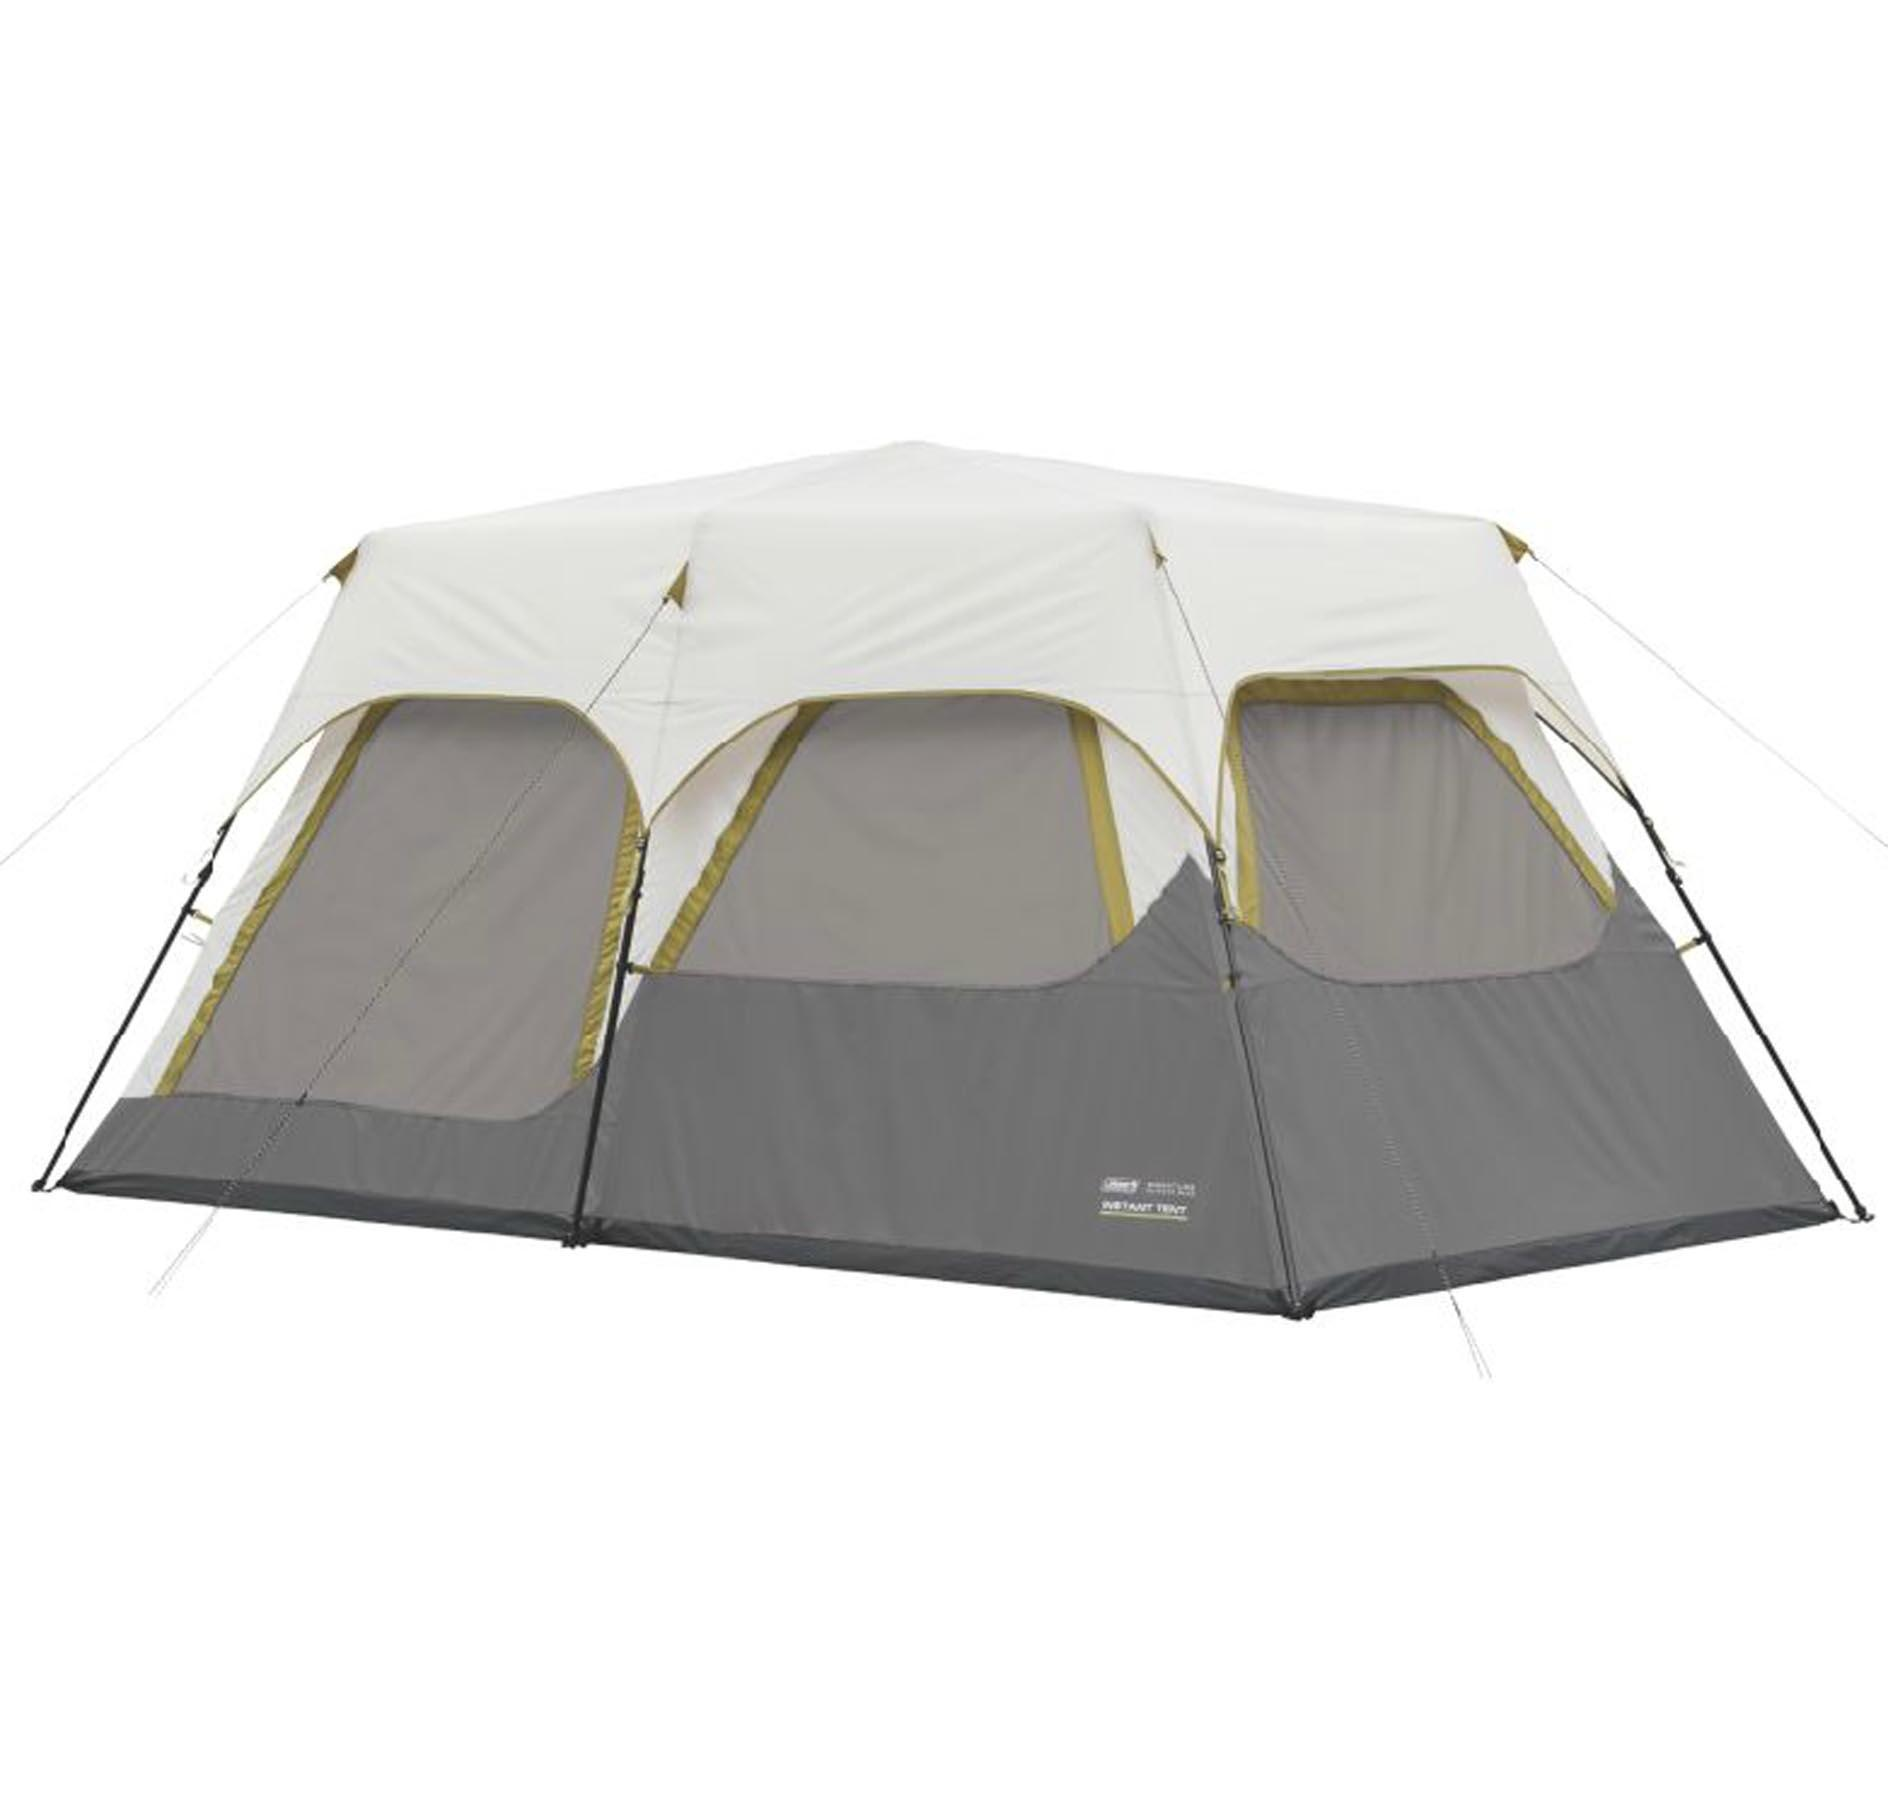 Buy Coleman Instant Tent For 8 Person in Dubai at cheap price